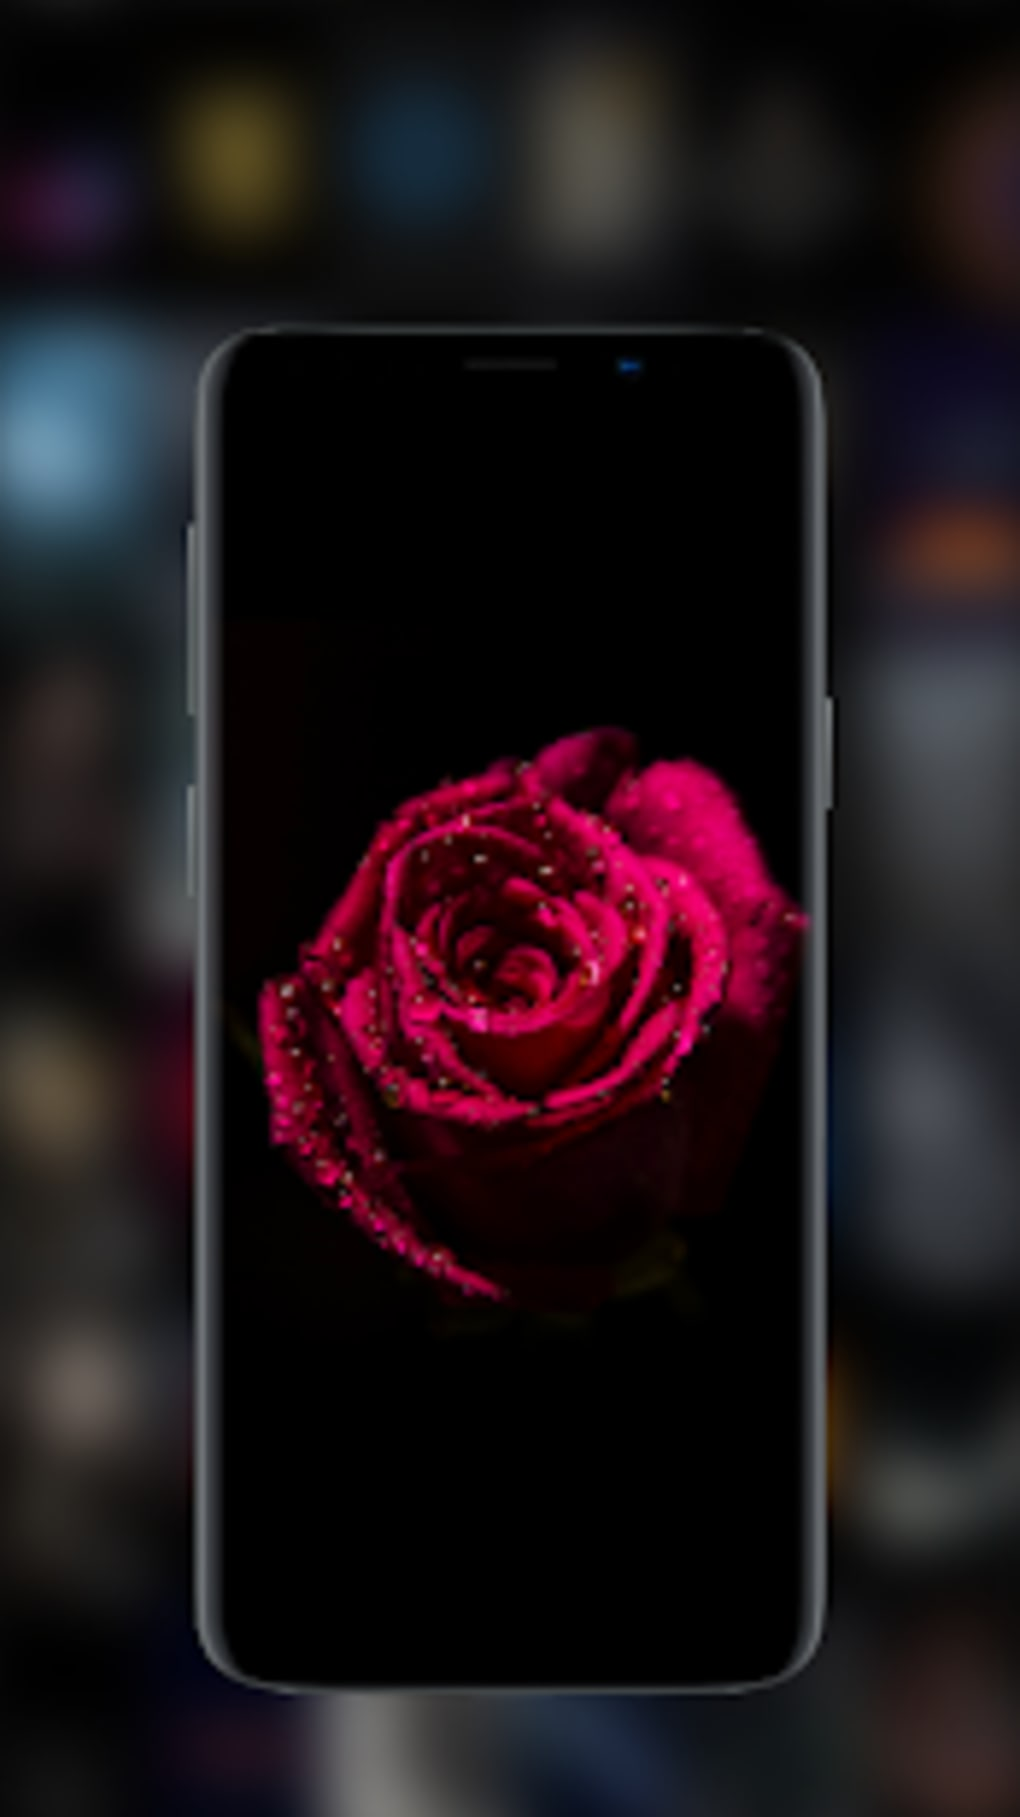 Mobile Dark Wallpapers Posted By John Johnson